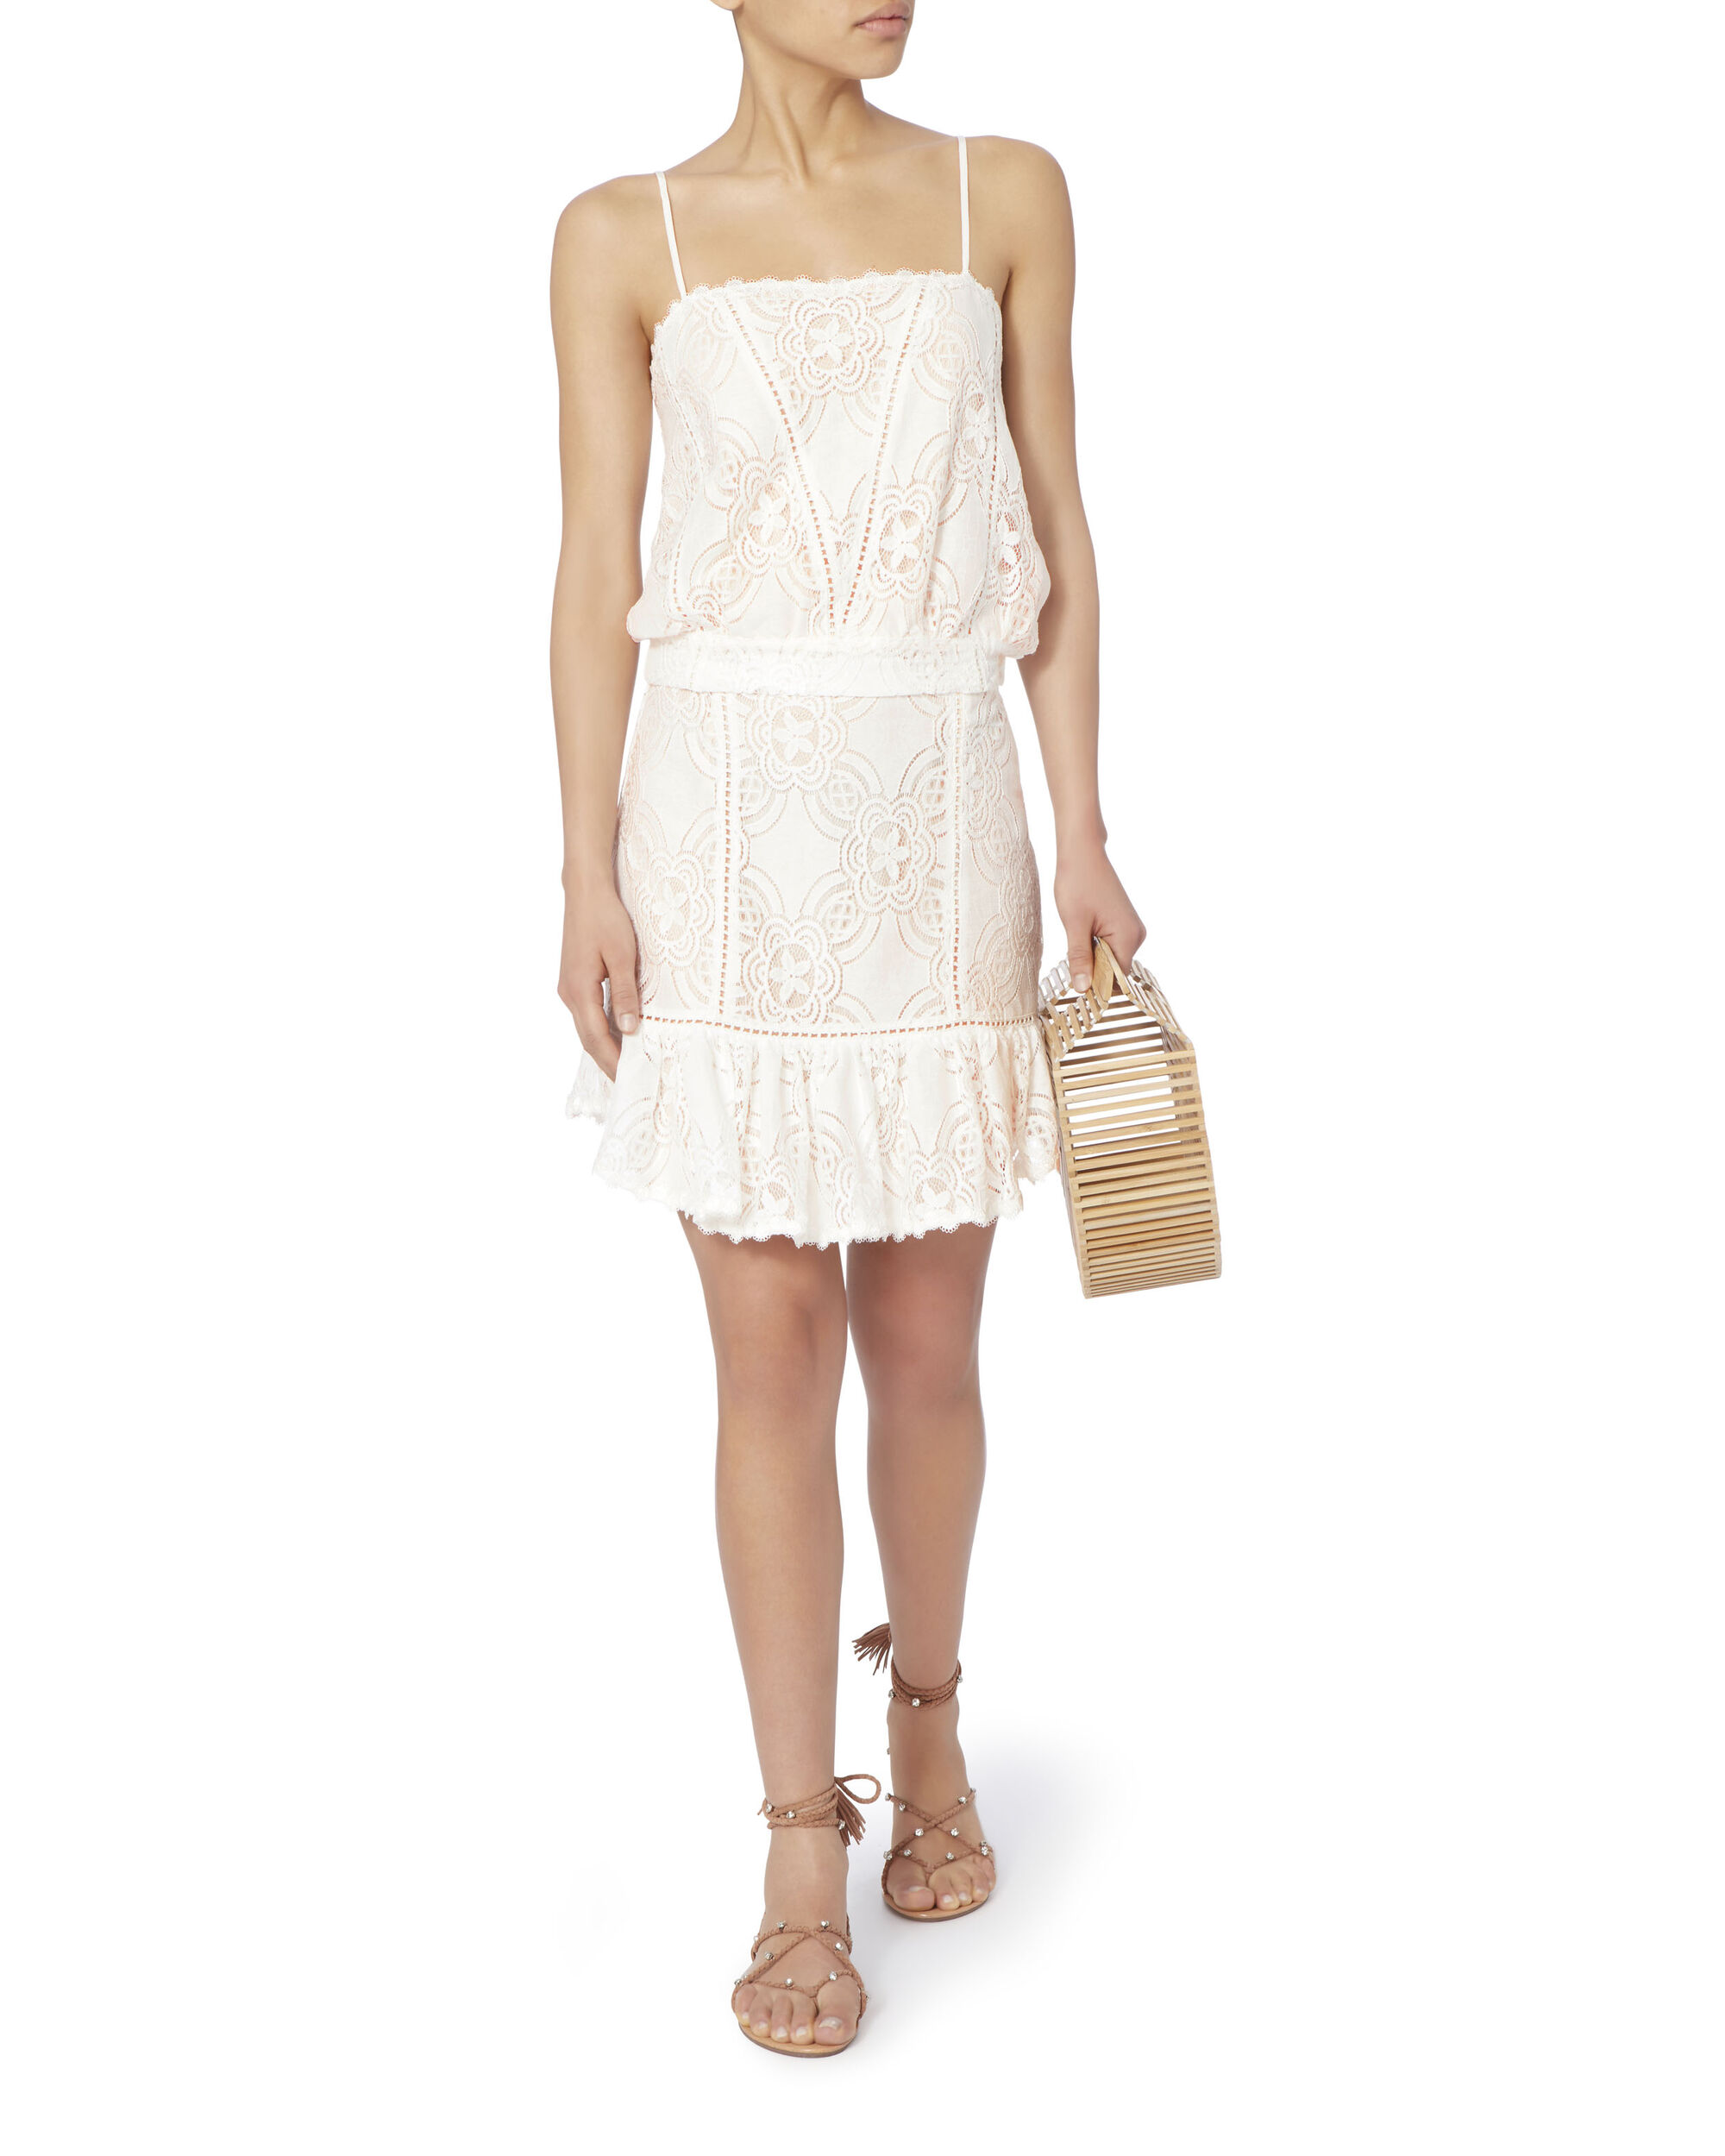 Chantilly Lace Frill Skirt, IVORY, hi-res